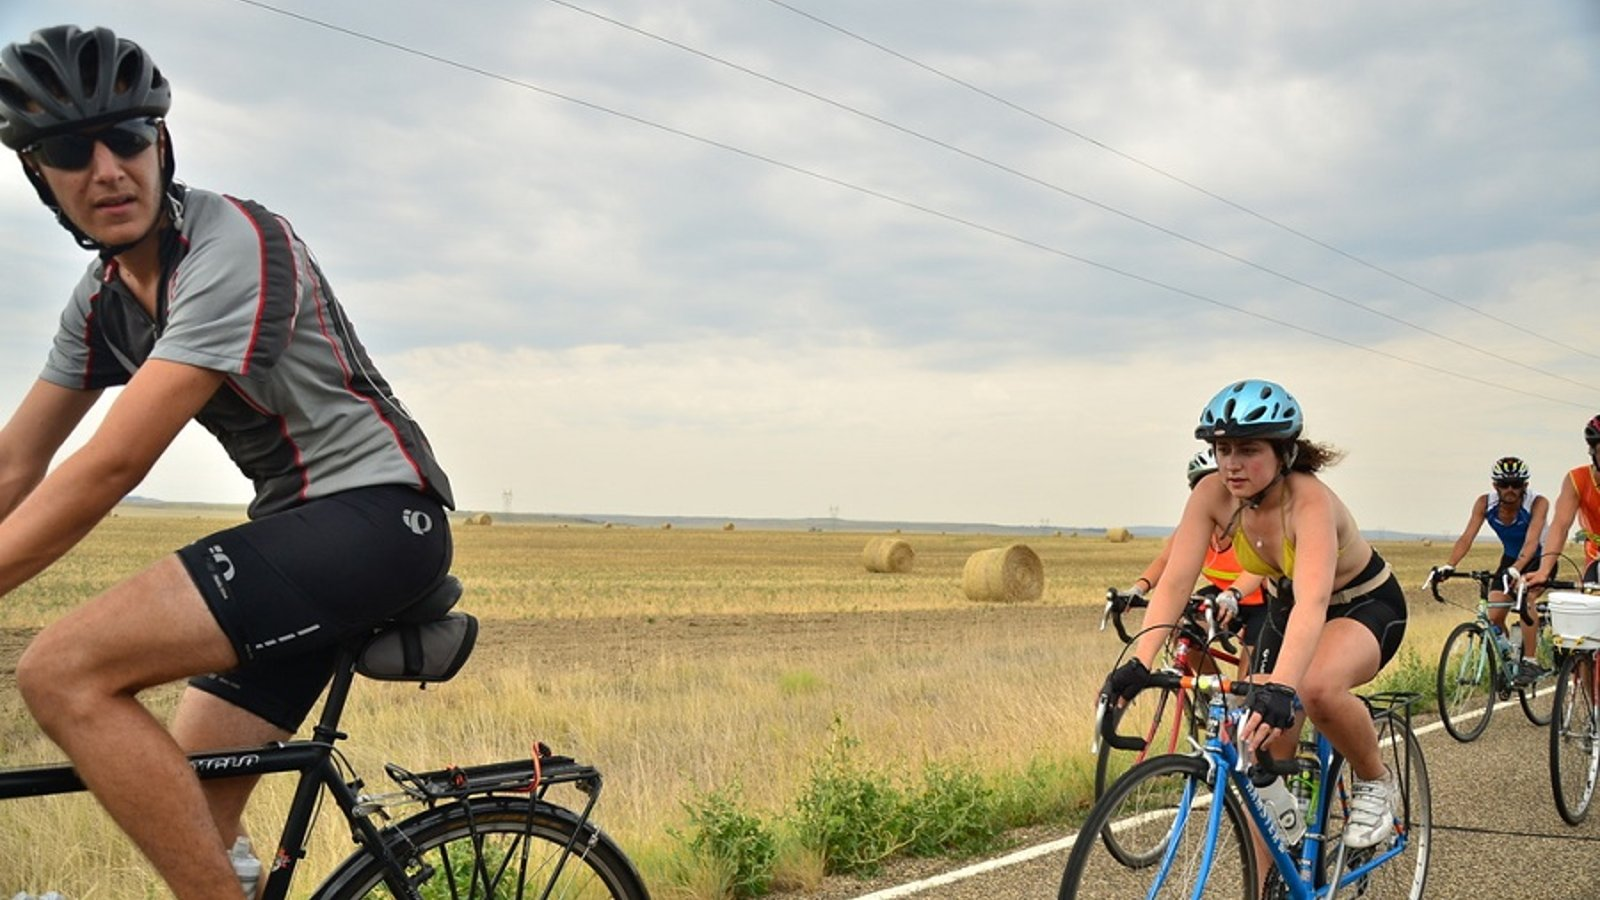 To the Moon - A Cross Country Bike Ride for Change